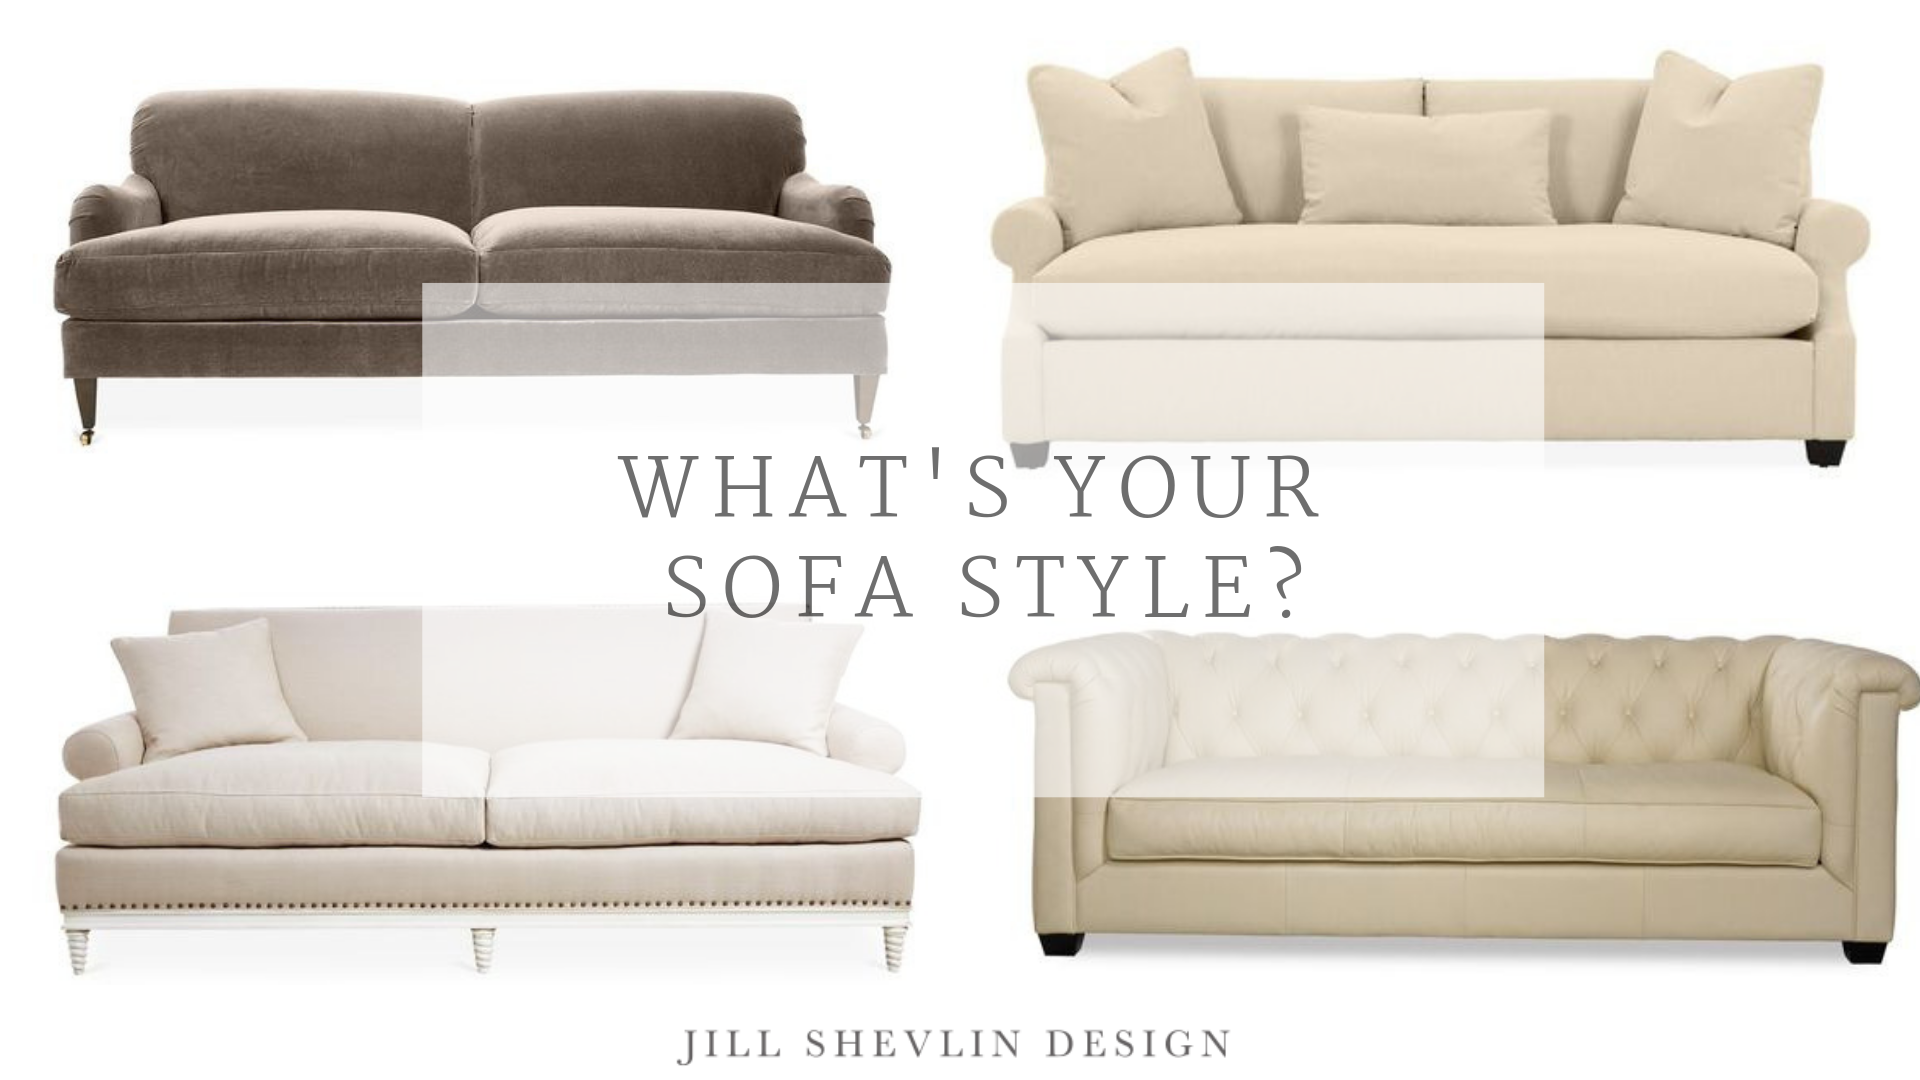 what is your sofa style - Jill Shevlin Design - Vero Beach Interior Designer - Vero Beach Home renovaton - Vero Beach Home Furniture - Vero Beach Decorate your Home